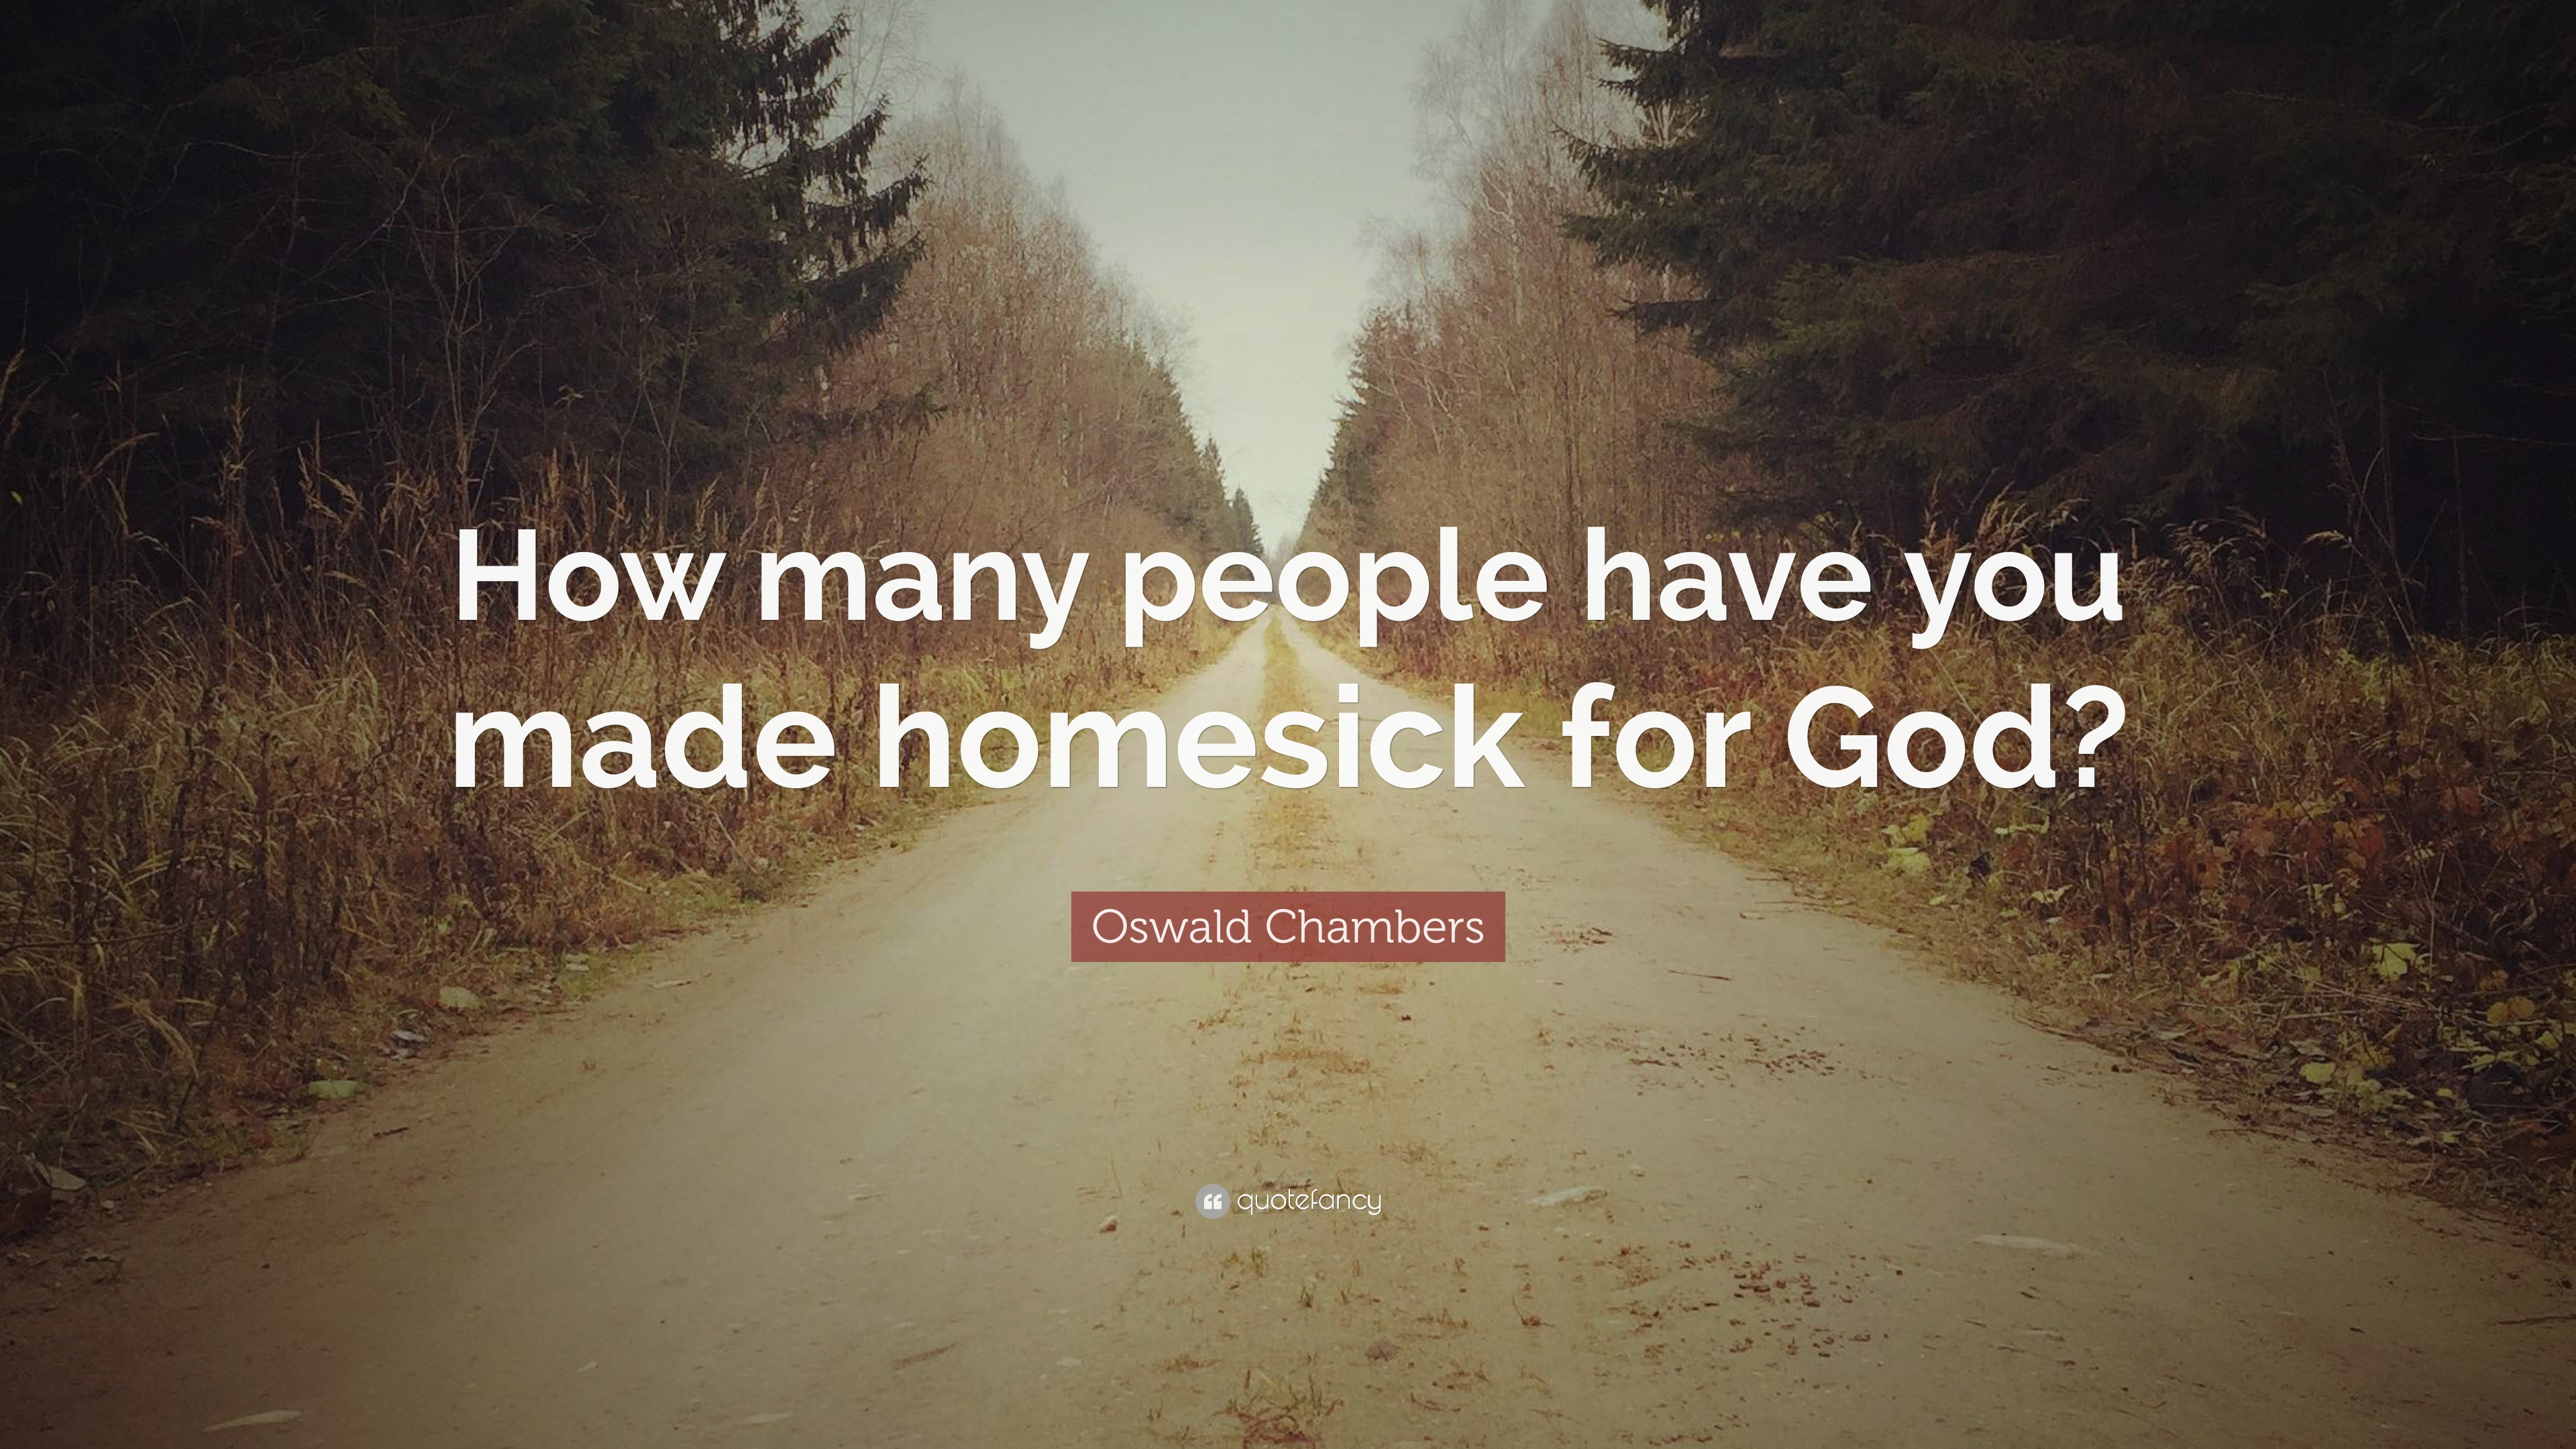 oswald chambers quote u201chow many people have you made homesick for